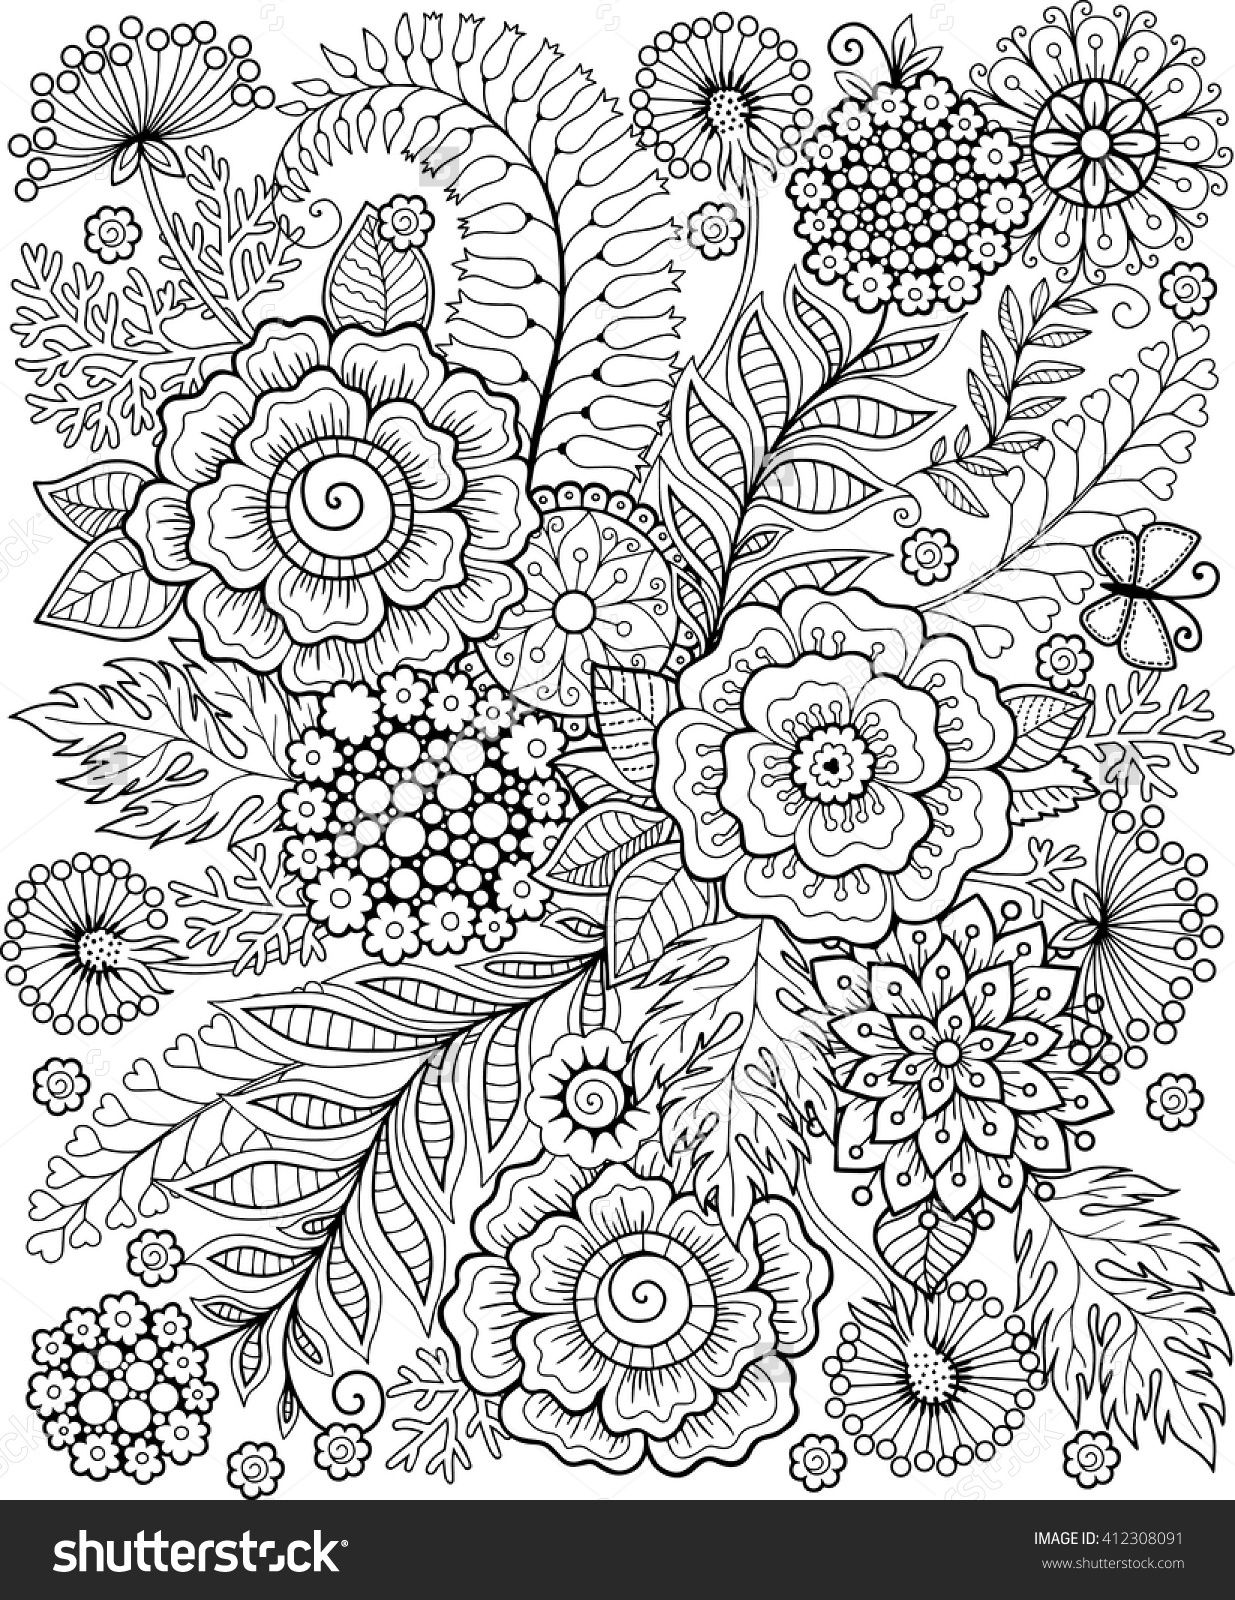 Relaxation Coloring Pages For Adults